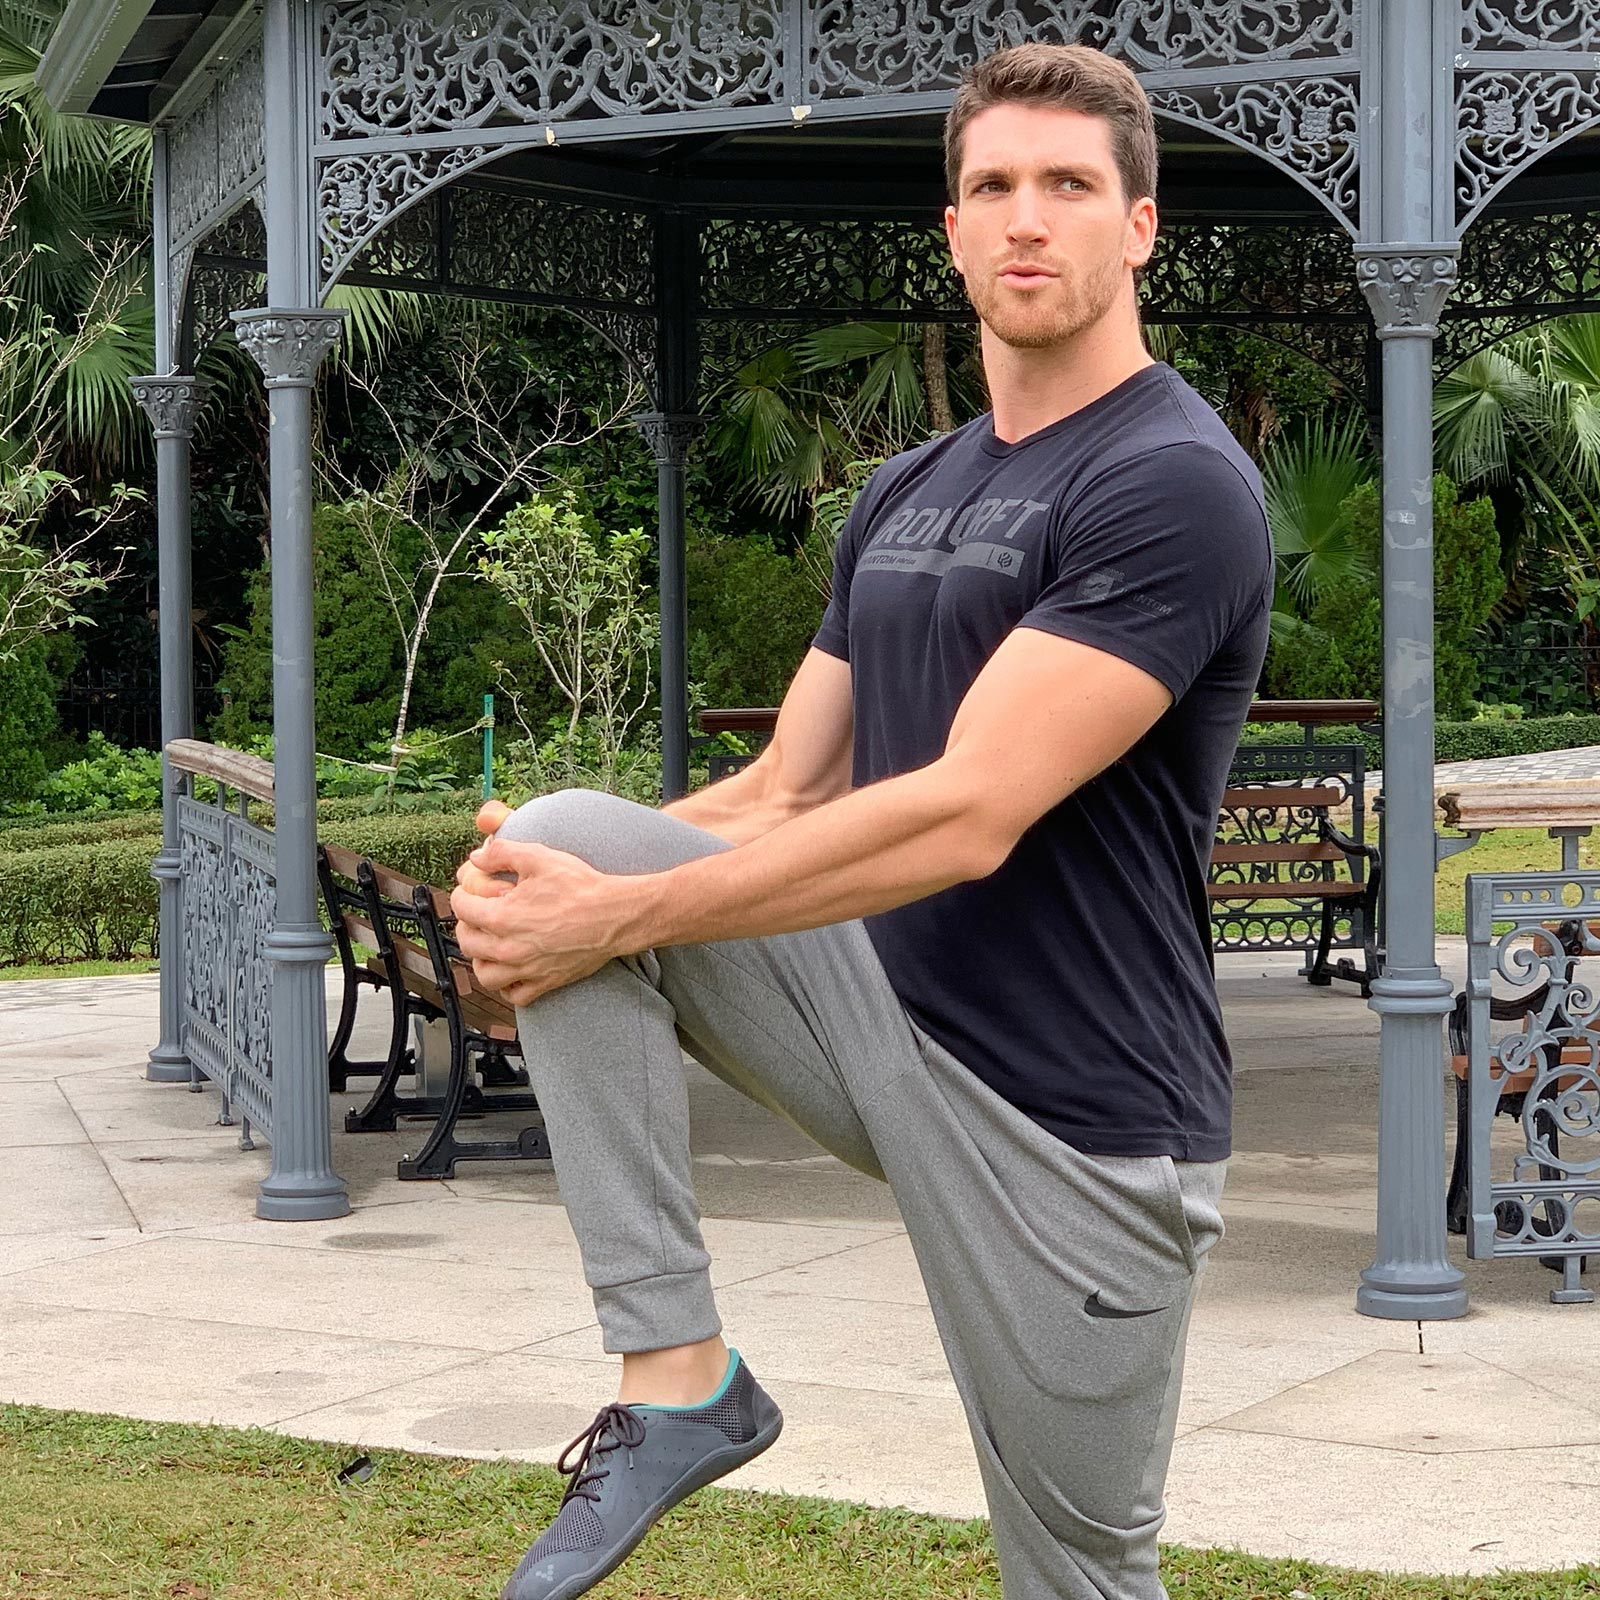 Author Stefan Burns Stretching Out